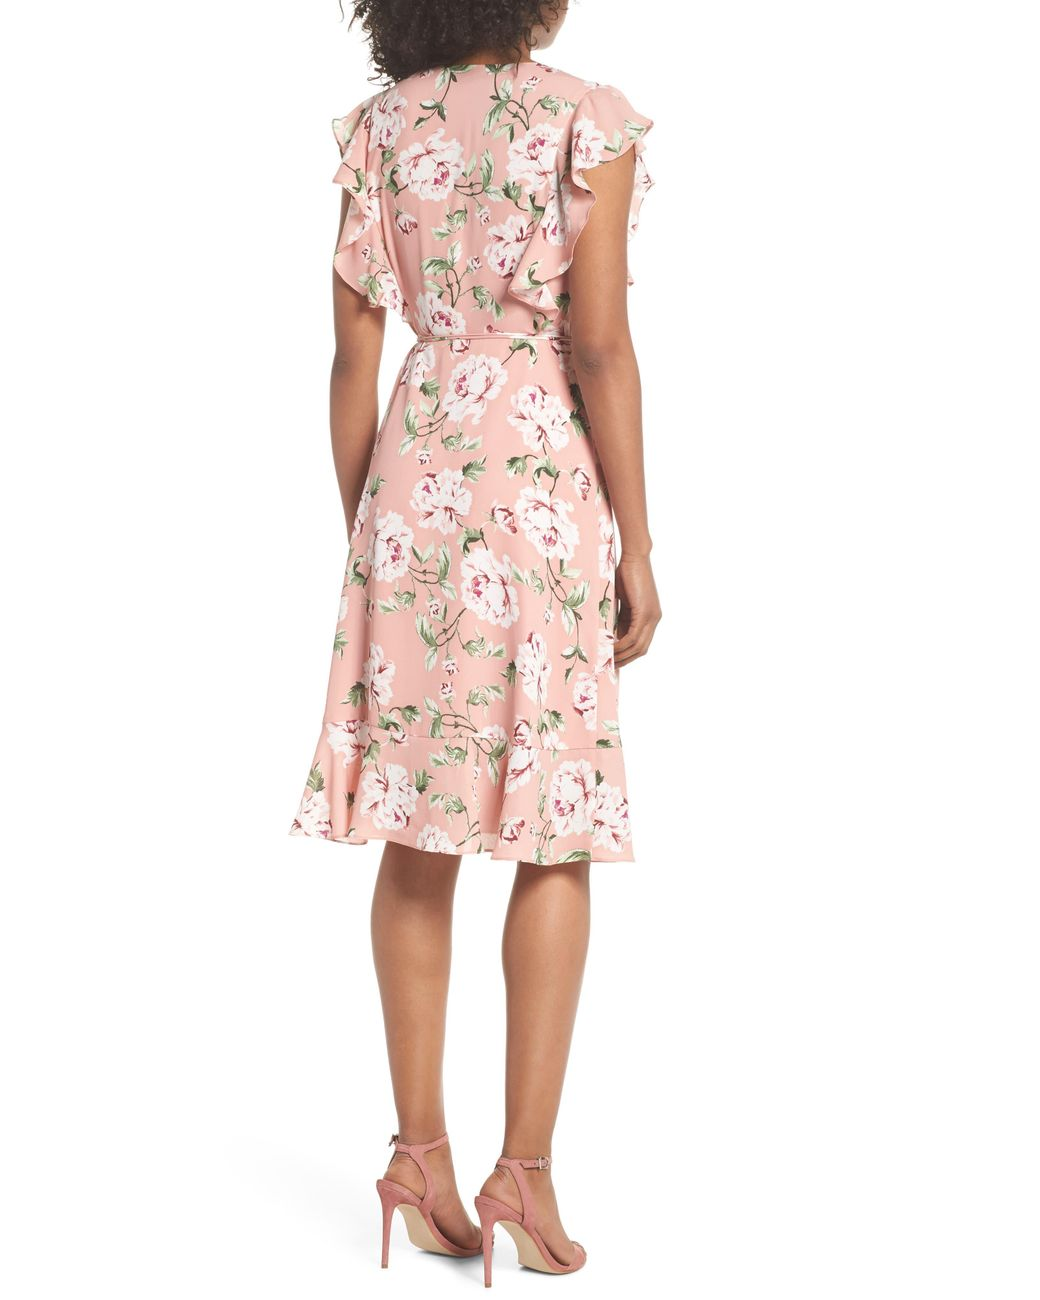 db67fecb1e59 Charles Henry Ruffle Sleeve Floral Wrap Dress in Pink - Lyst